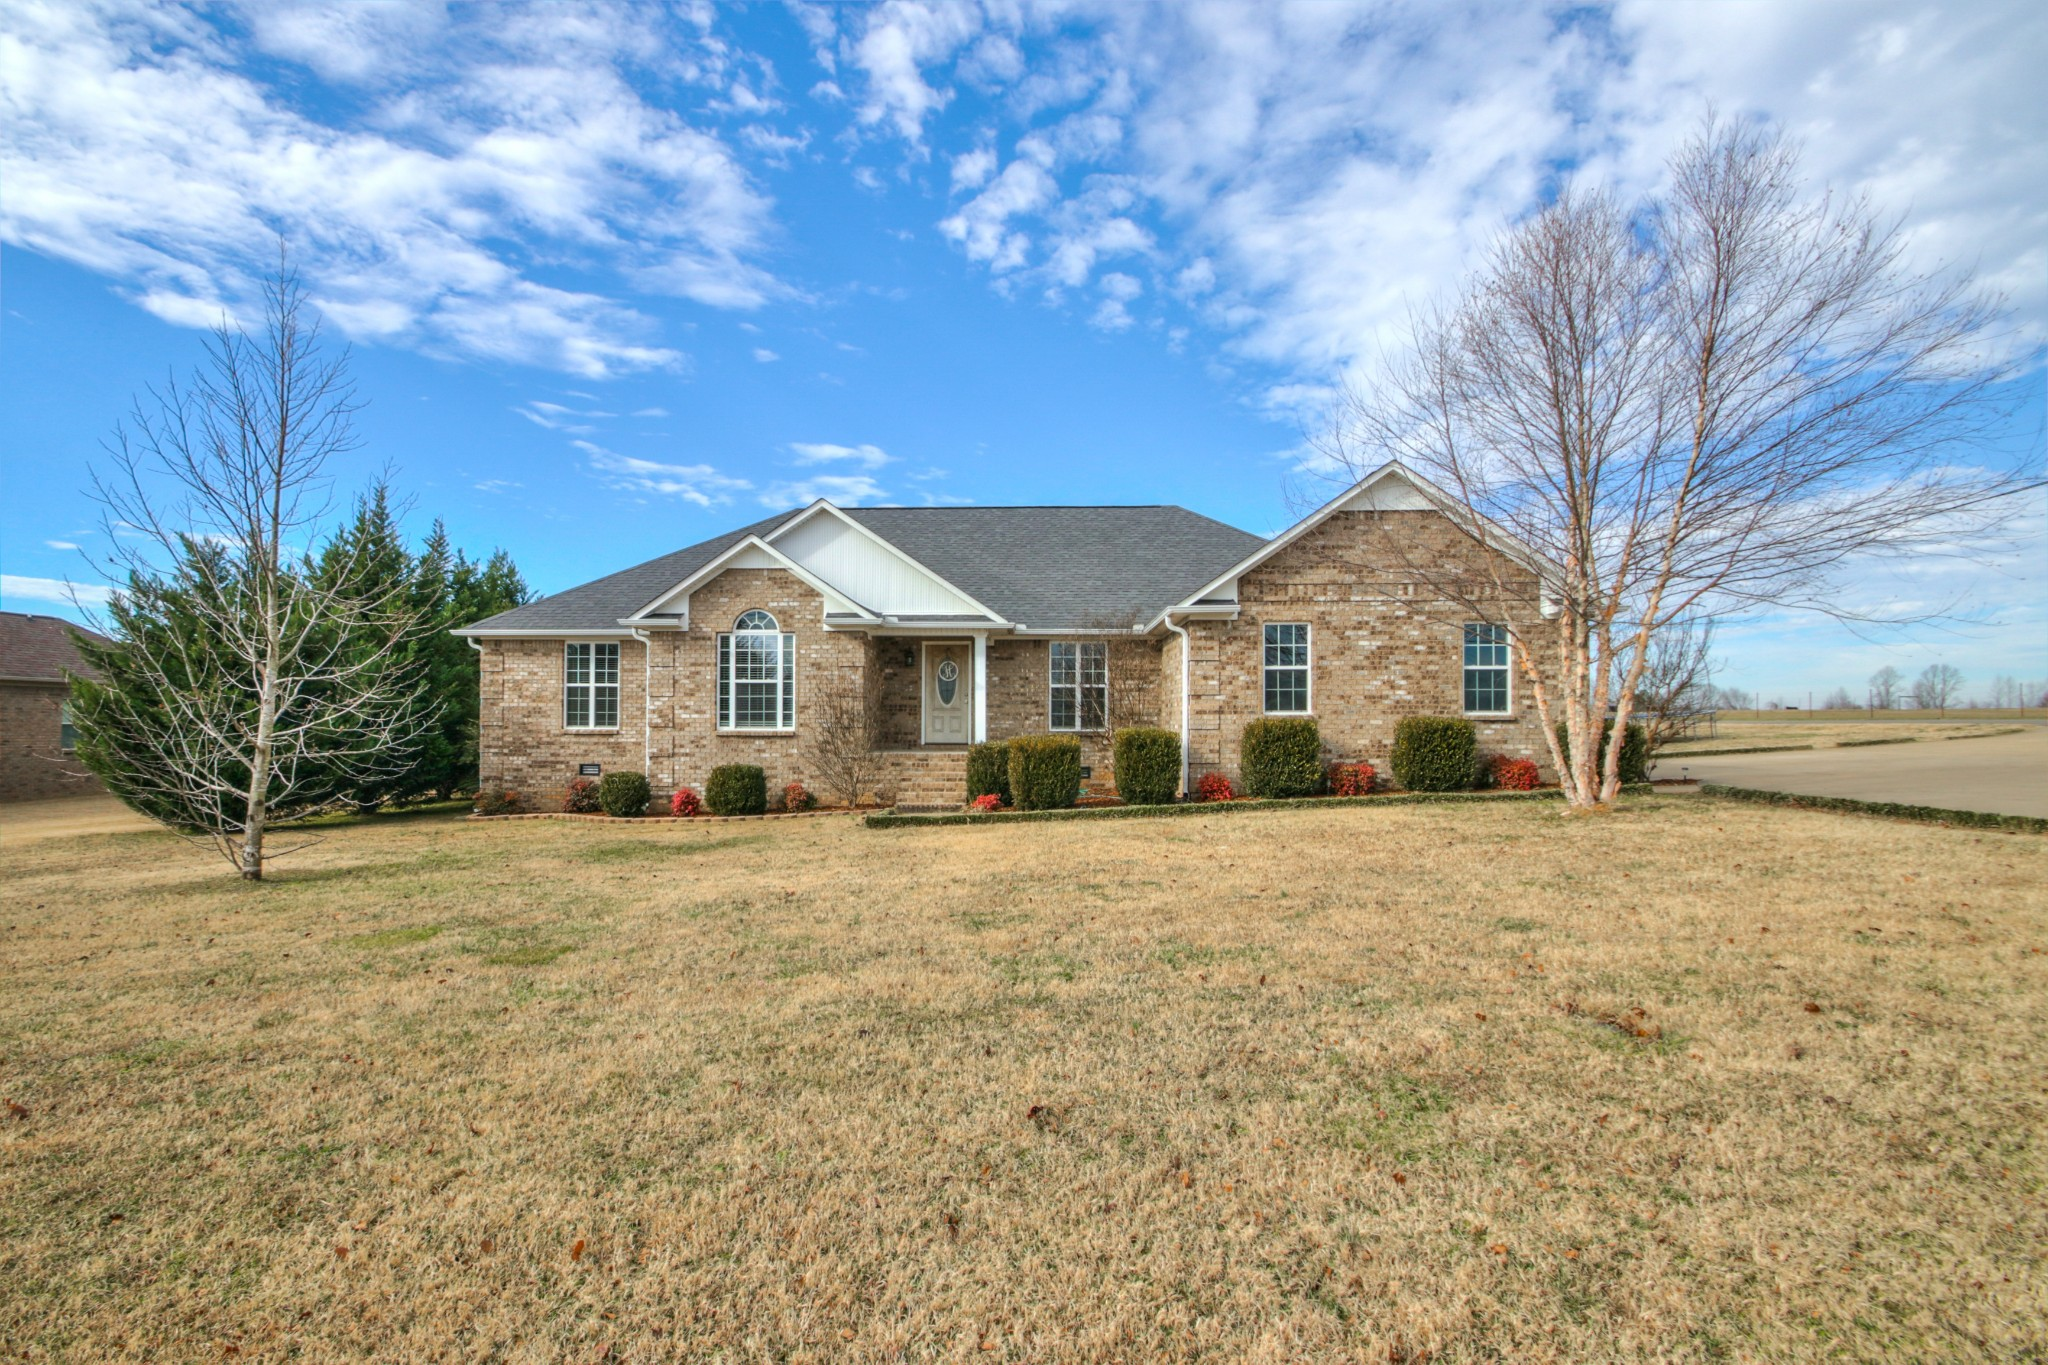 26050 Ashton Ln Property Photo - Ardmore, TN real estate listing